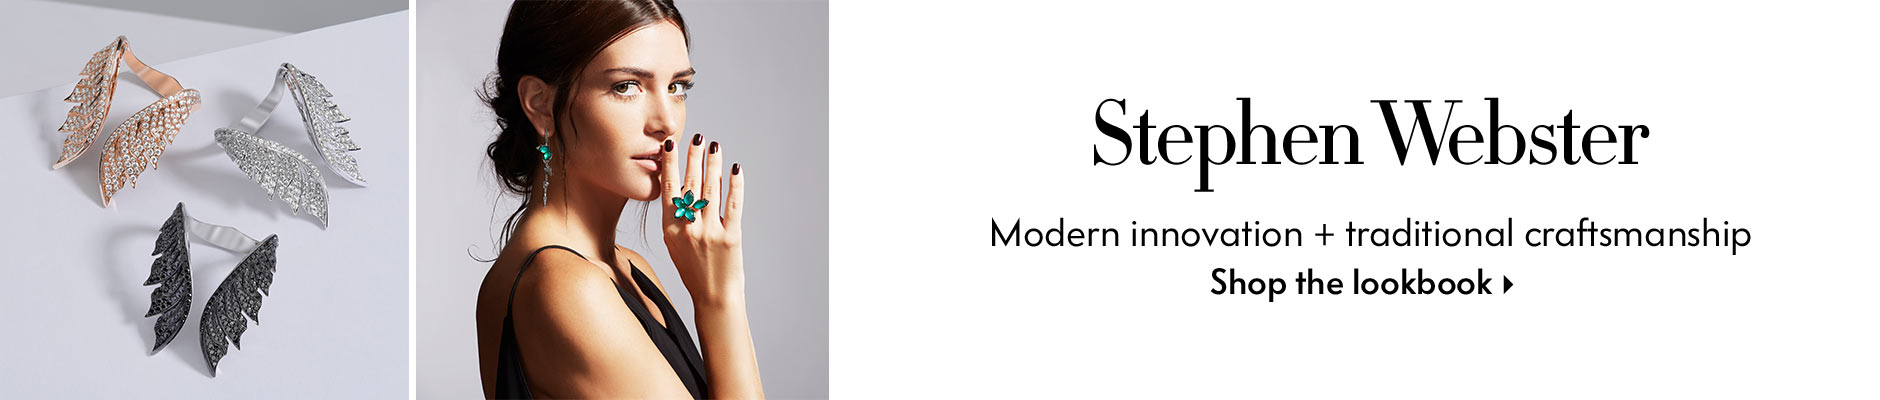 Stephen Webster - Modern Innovation + traditional craftsmanship - Shop the lookbook